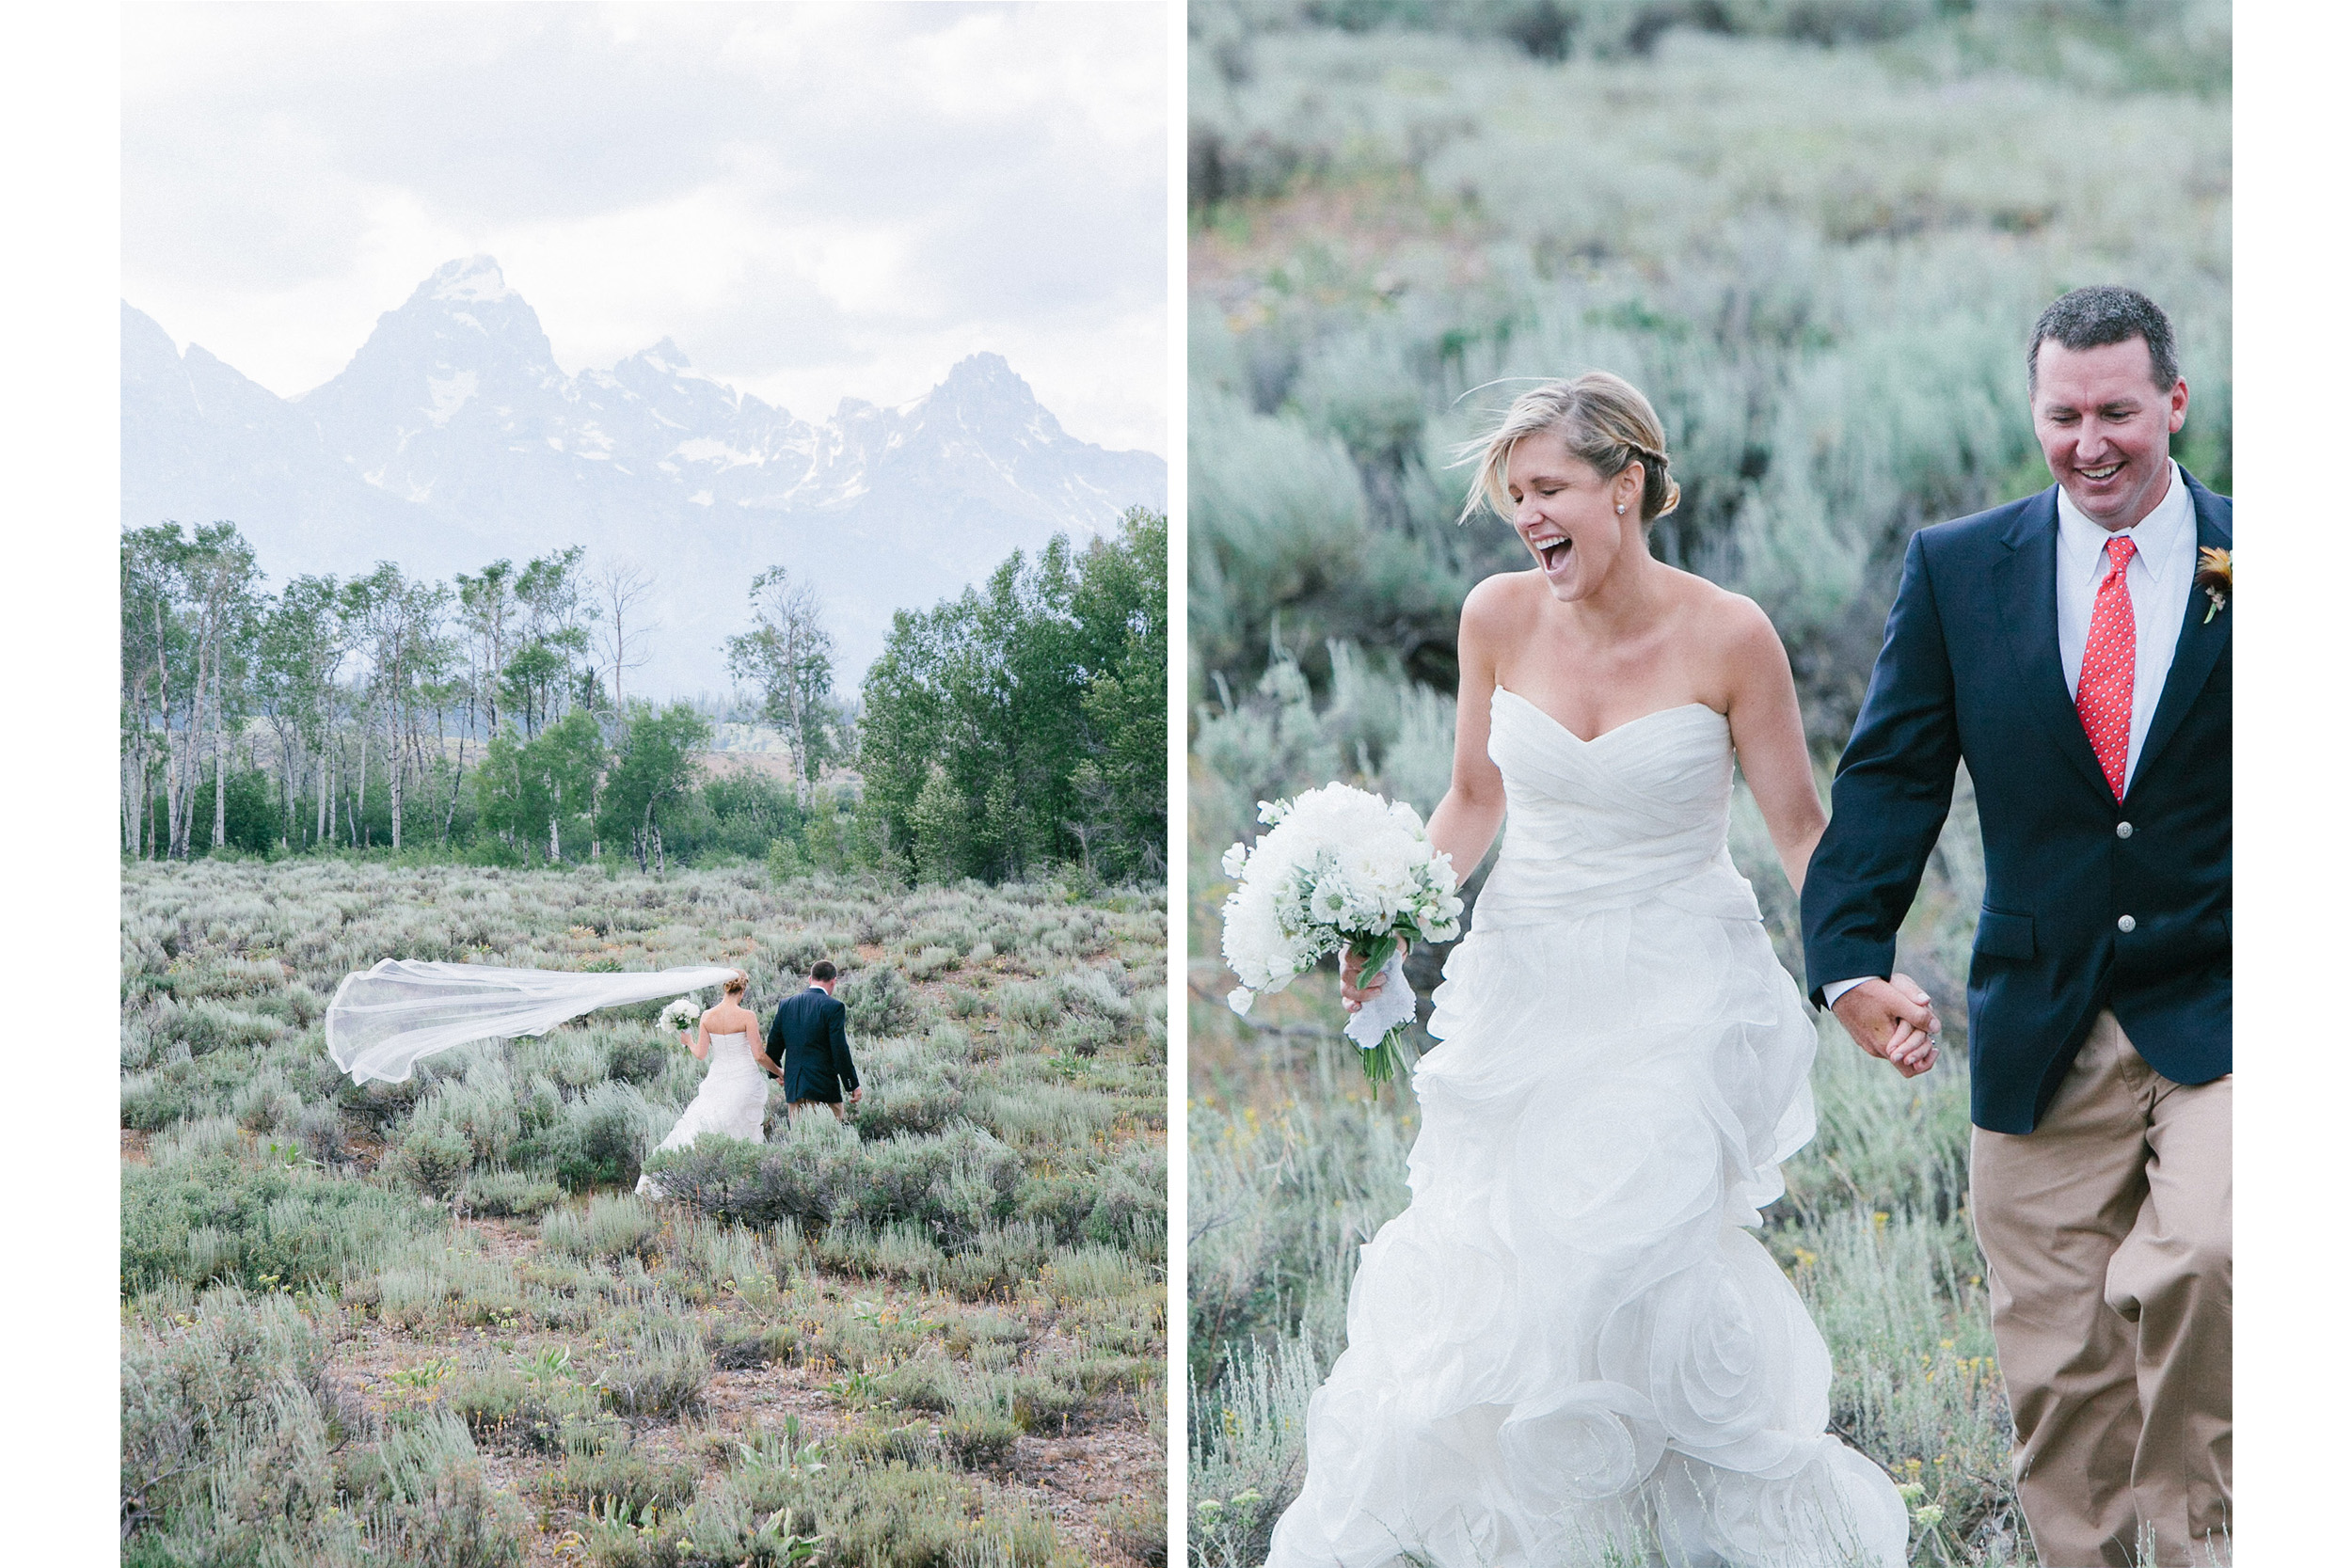 011a_The best wedding photography from Jackson Hole, Wyoming and beyond by photographer Hannah Hardaway.jpg